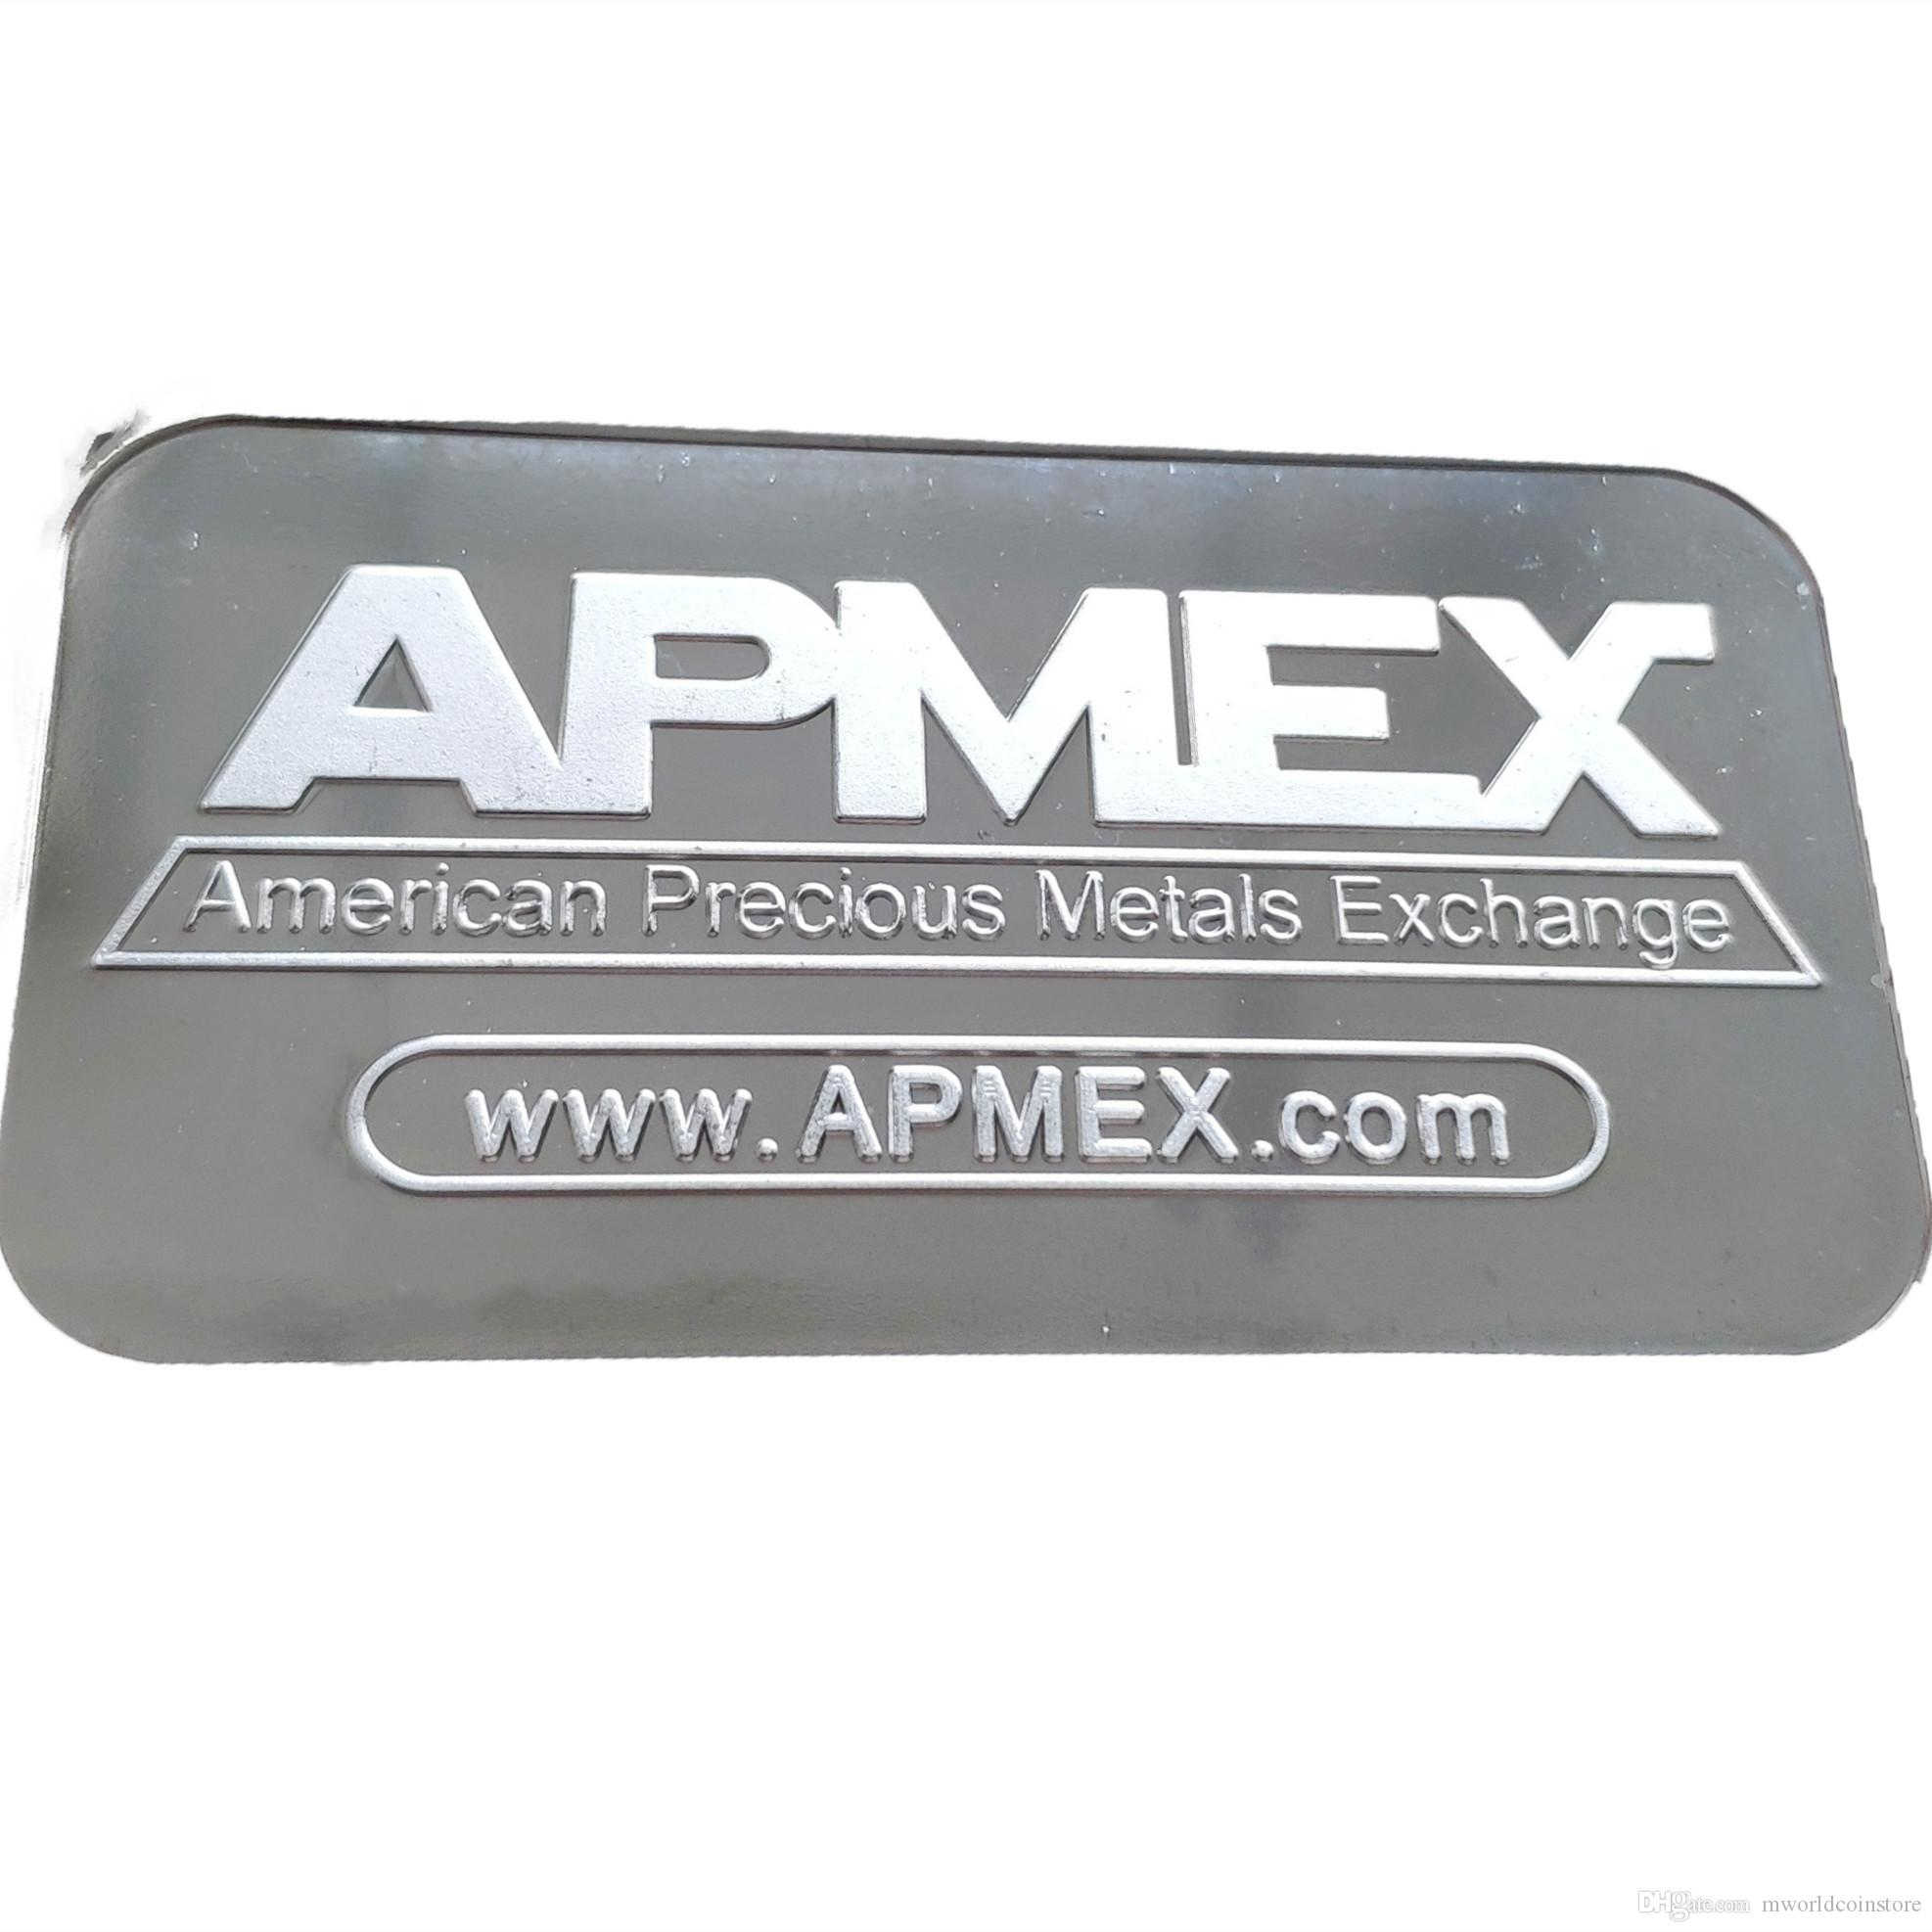 1 OZ APMEX Silver Plated Metal Bar Mint Bullion Bar Silver Coin for Home Collection Souvenir gifts 5 pcs/lot